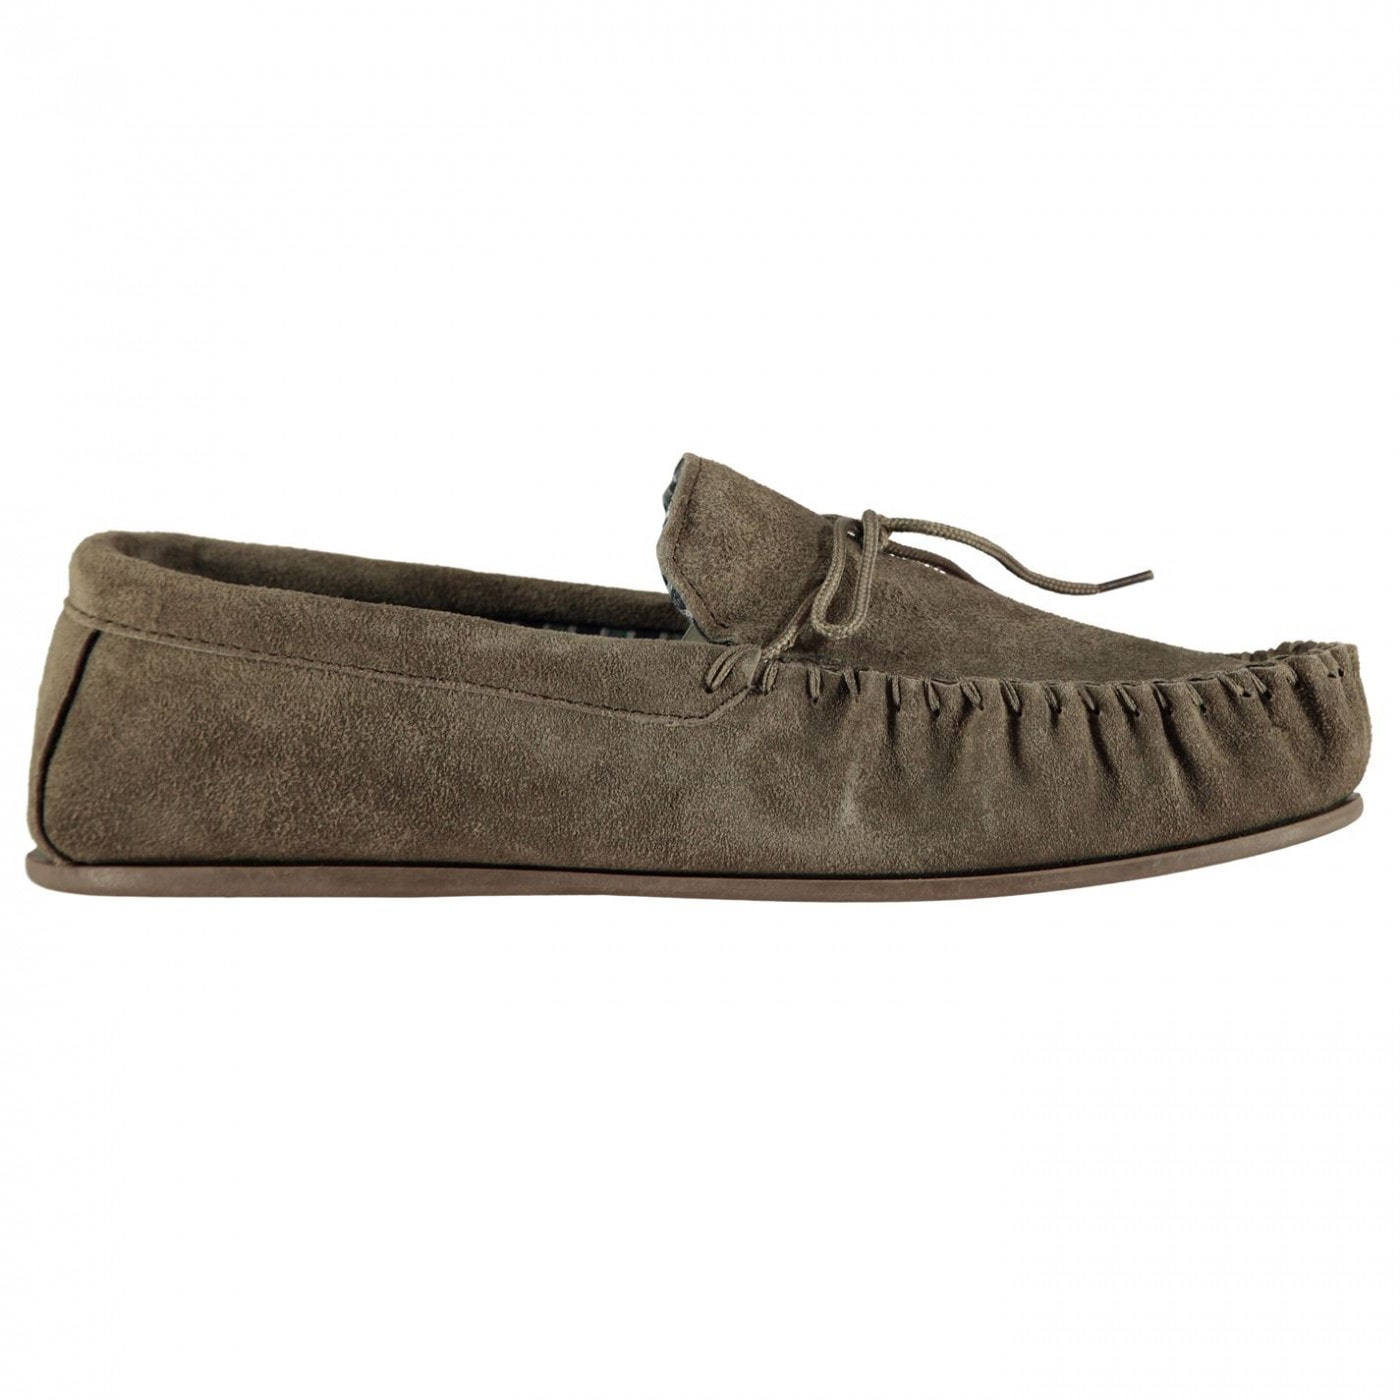 Mokkers Moccasin Carpet Shoes Mens